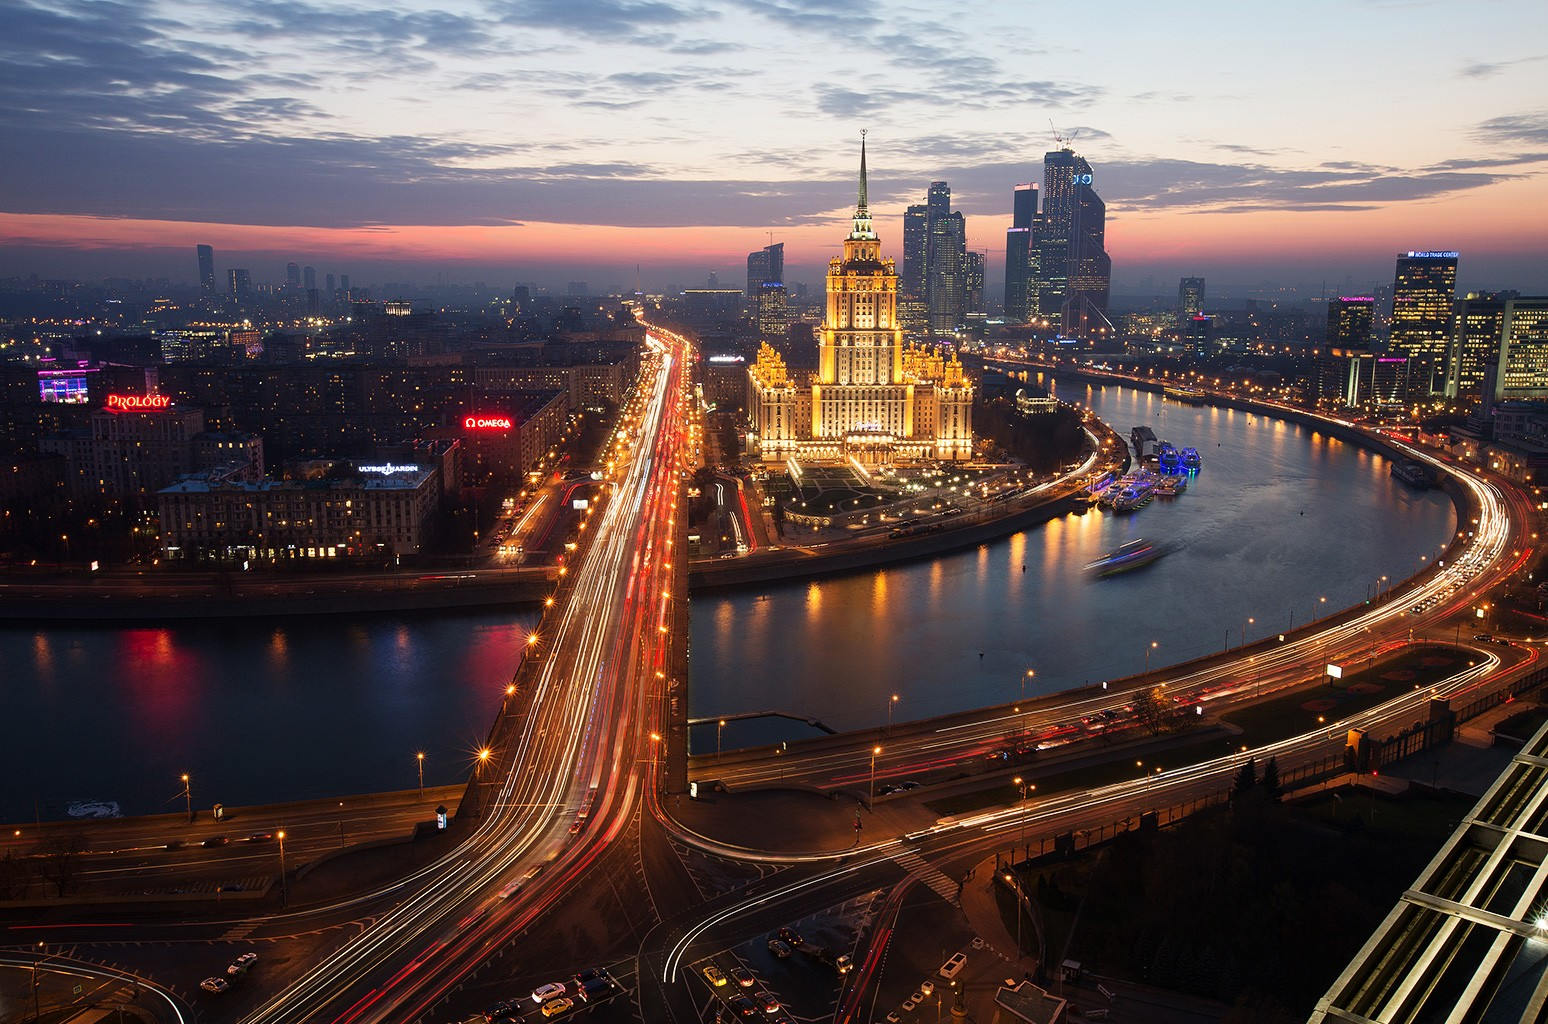 The skyscrapers of the Moscow International Business Center in Russia photographed on Oct. 28, 2014.